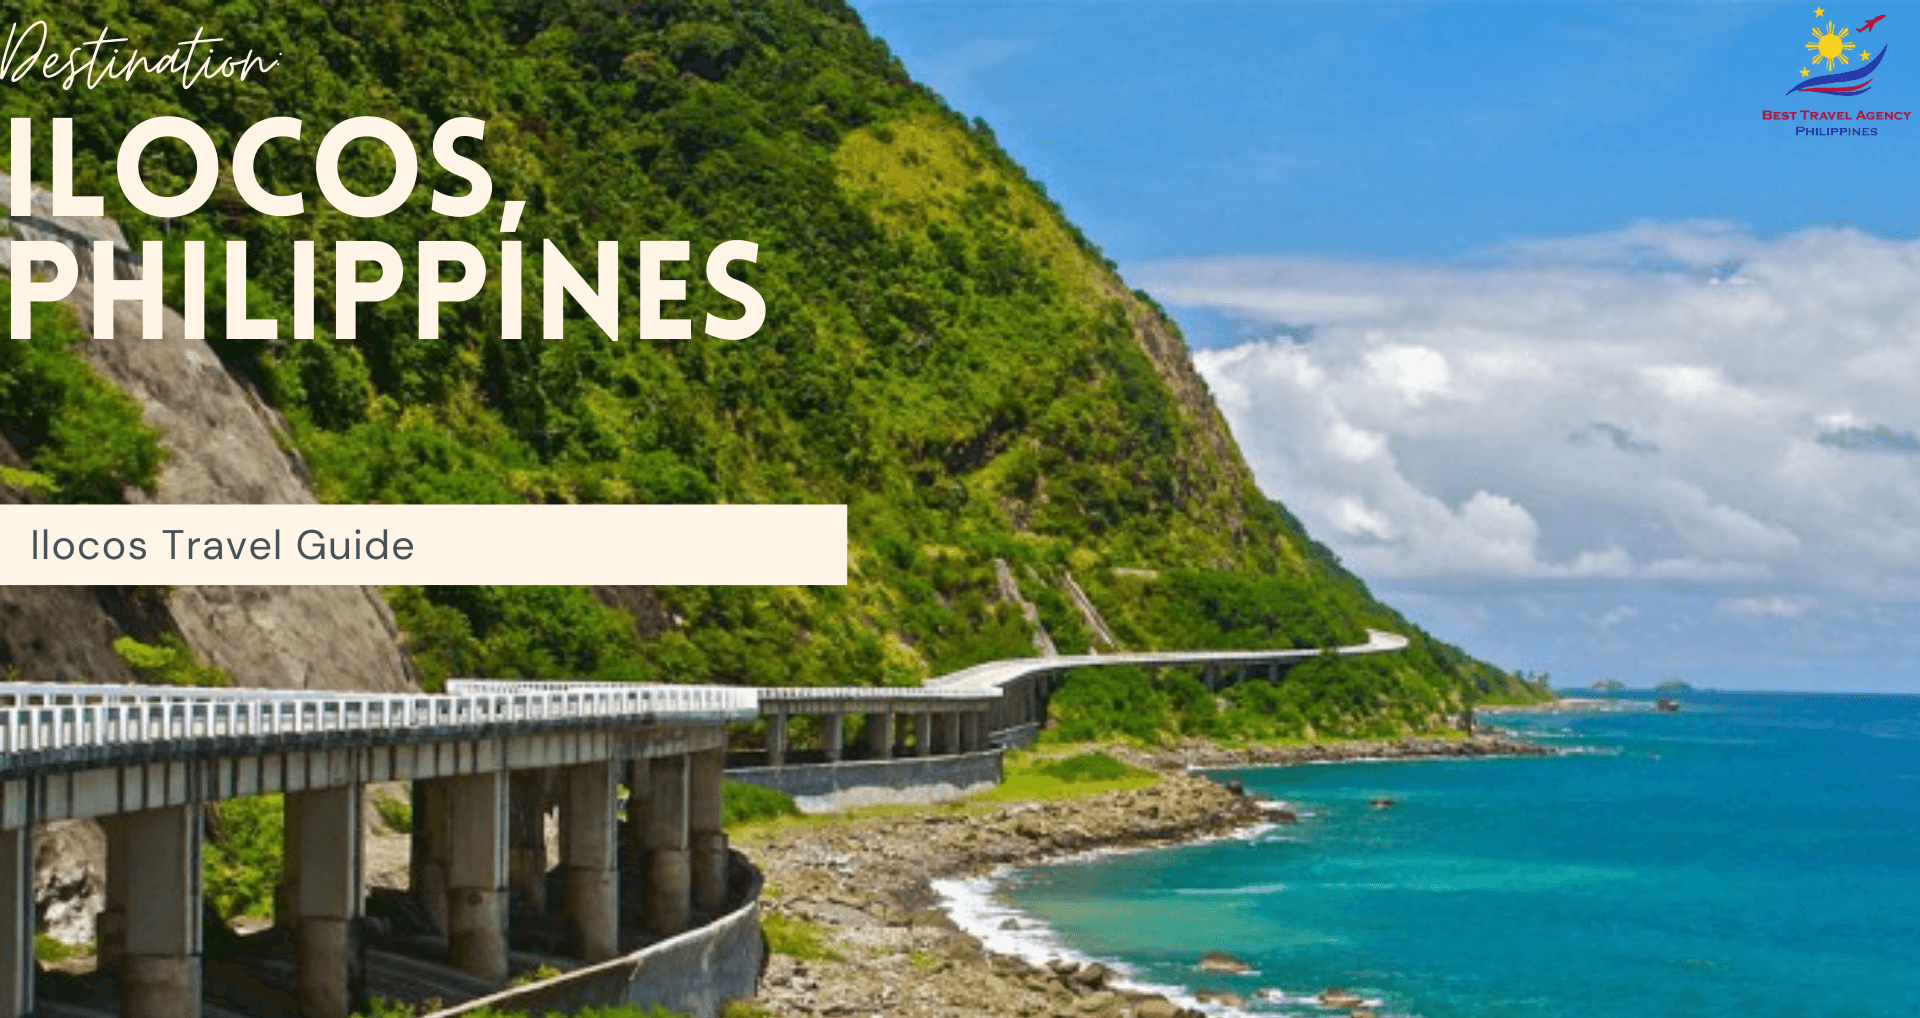 Ilocos Travel Guide